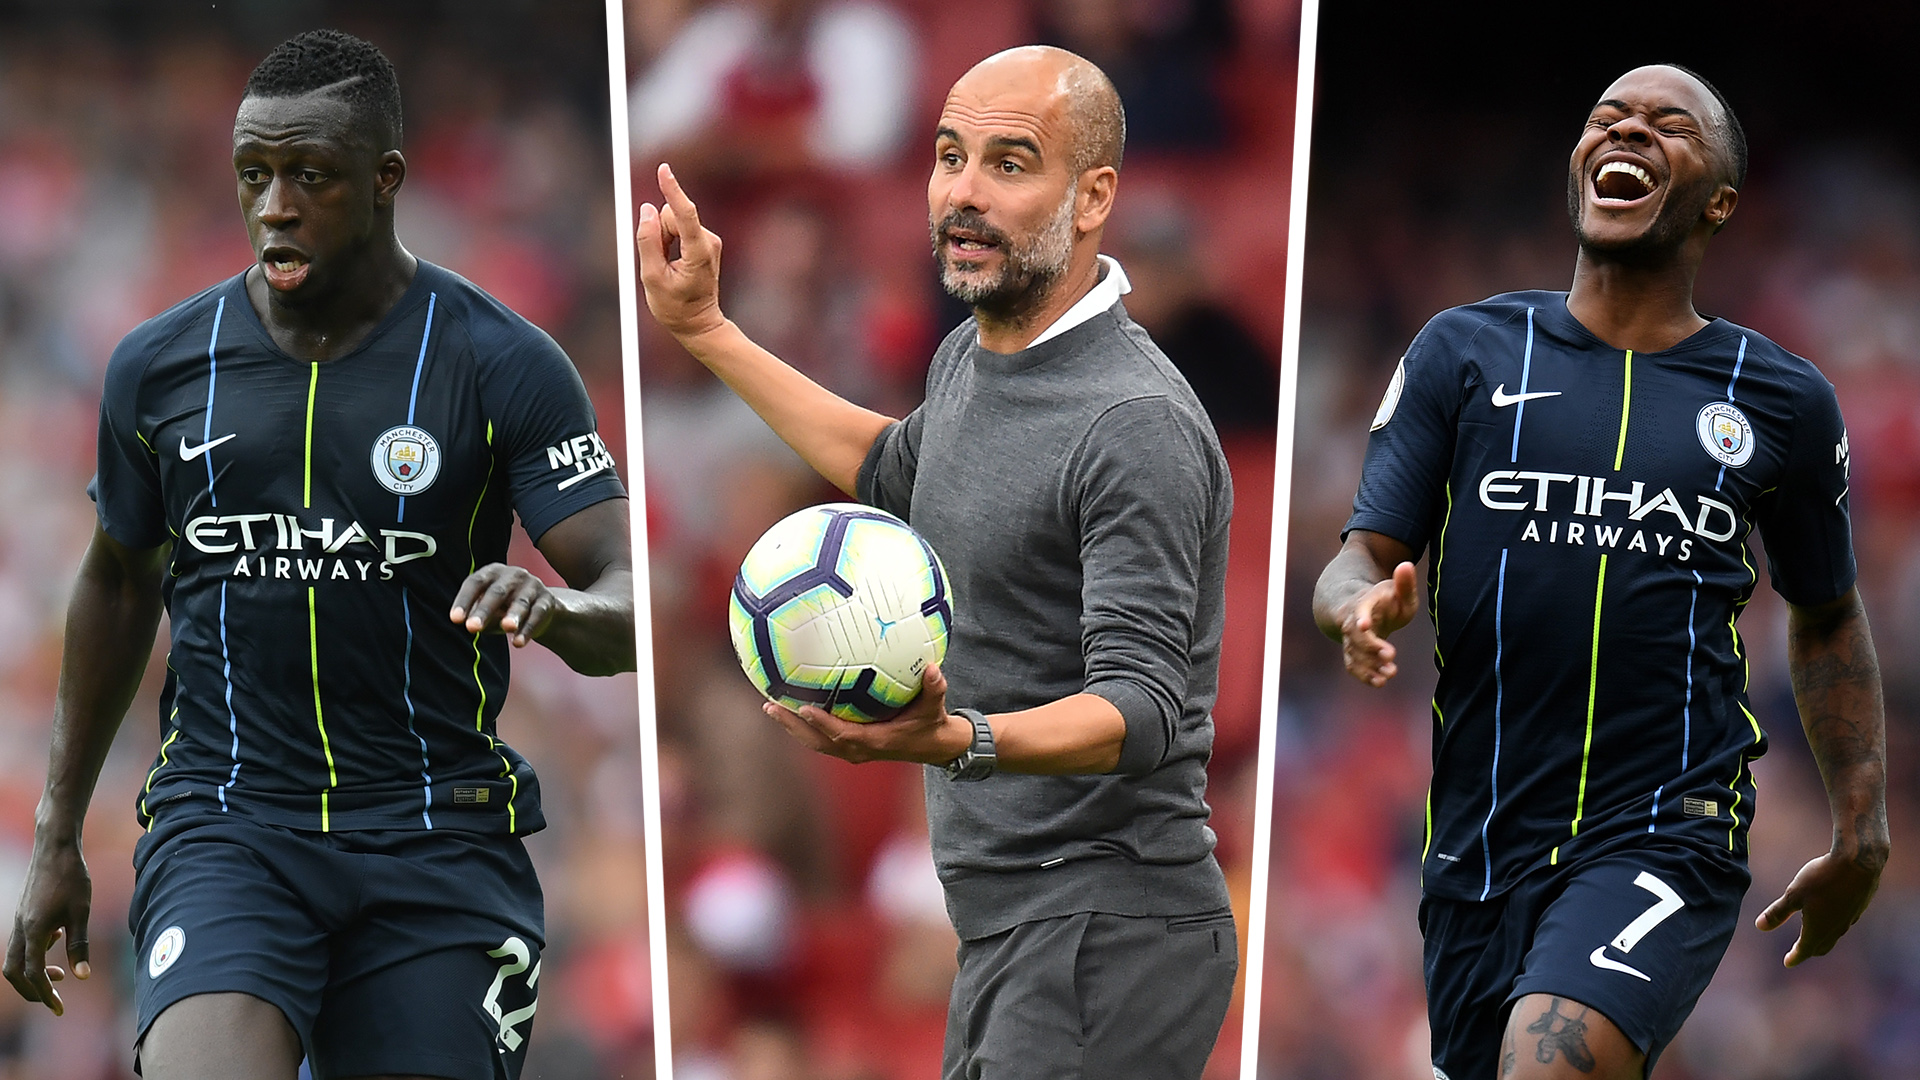 Manchester City 2 0: Benjamin Mendy's new role could hold key for